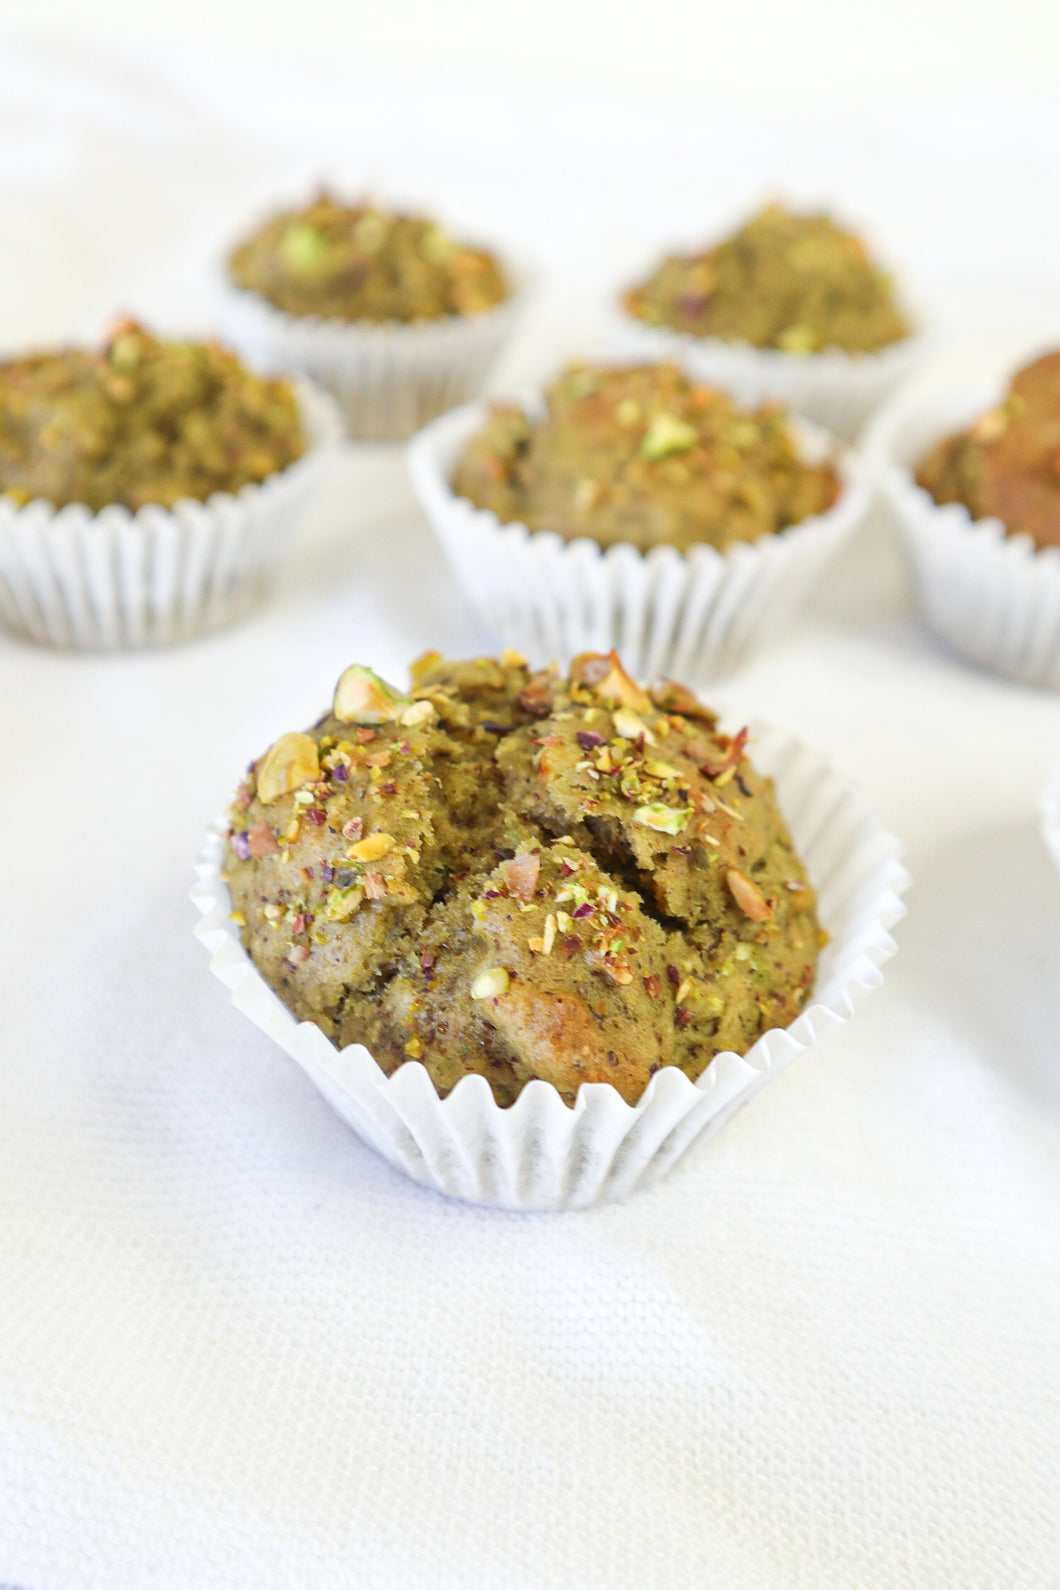 Green Tea Pistachio Muffins